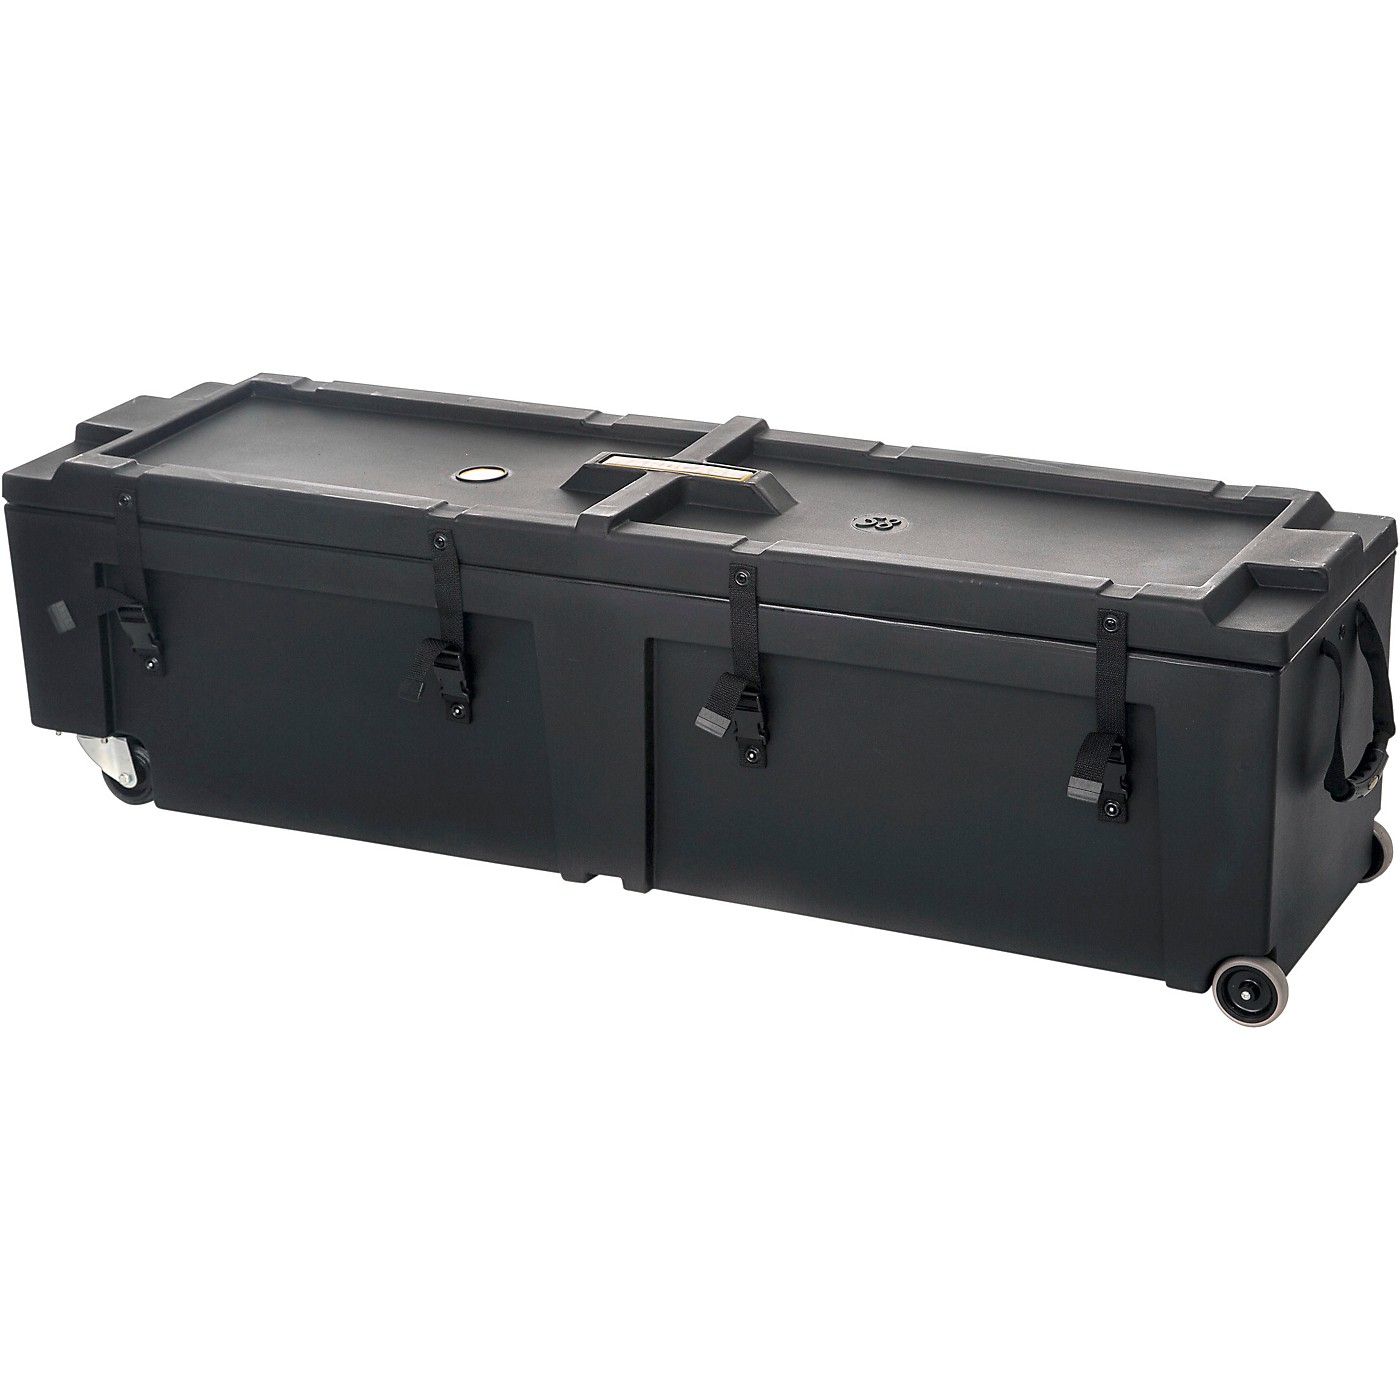 HARDCASE 58 x 16 x 16 in. Hardware Case with Four Wheels thumbnail